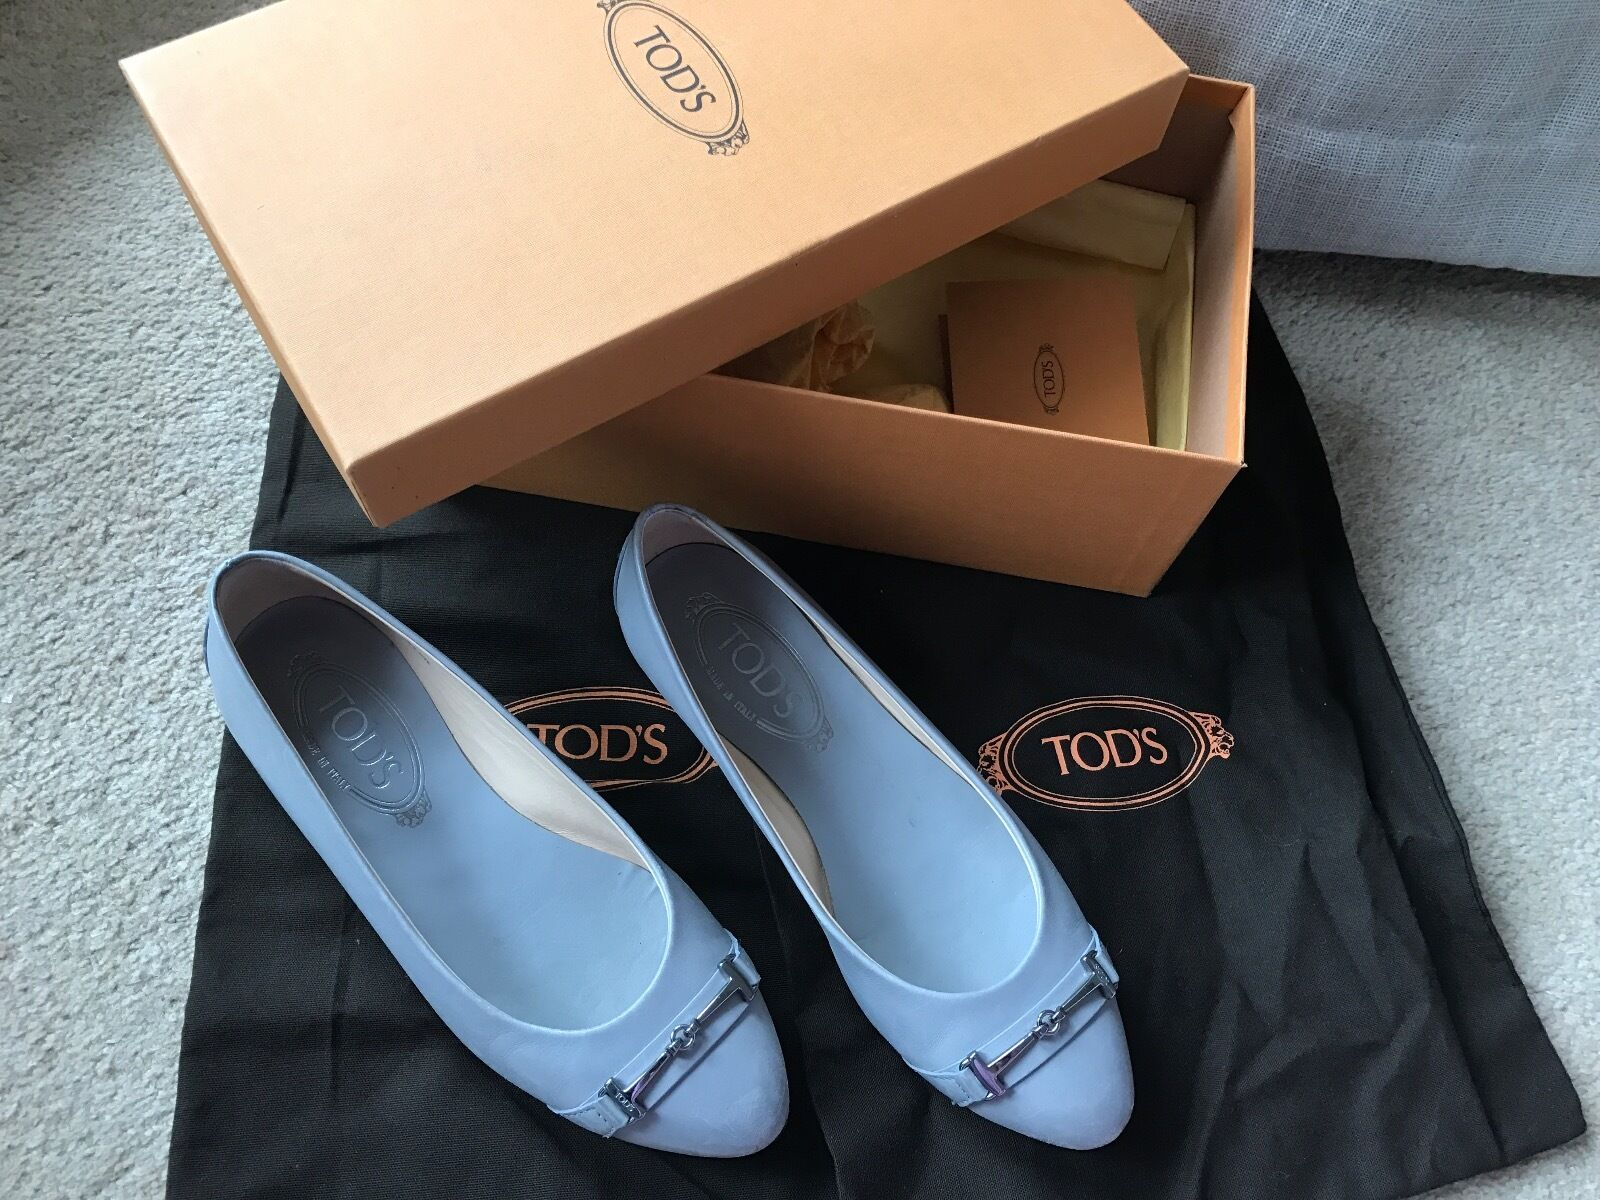 TODS Flat shoes Ballet Flats Ballerinas - Grey Leather Leather Leather - Size 36 - 794703